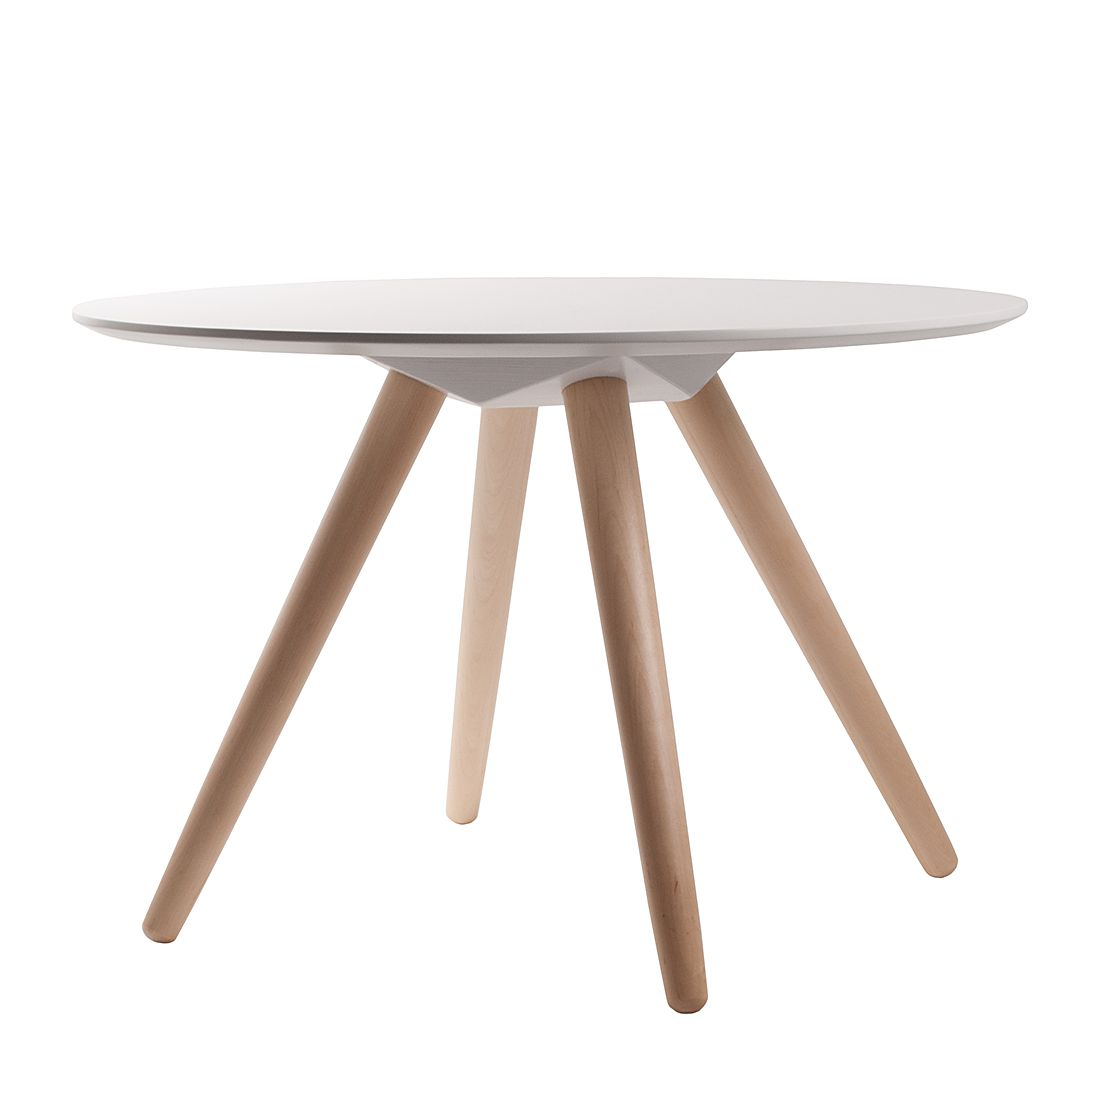 Table d'appoint Bee II - Blanc / Bouleau massif, Zuiver